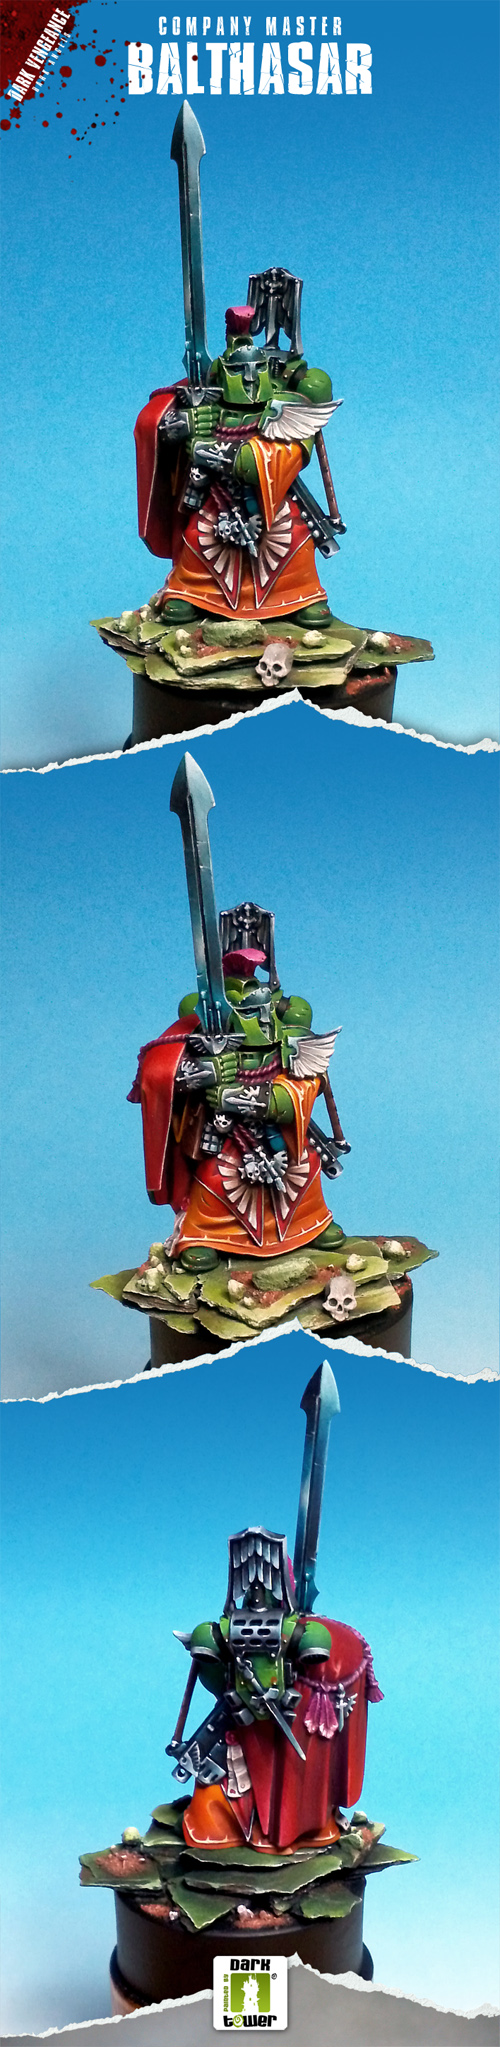 Dark Angels Company Master Balthasar (Dark Vengeance)